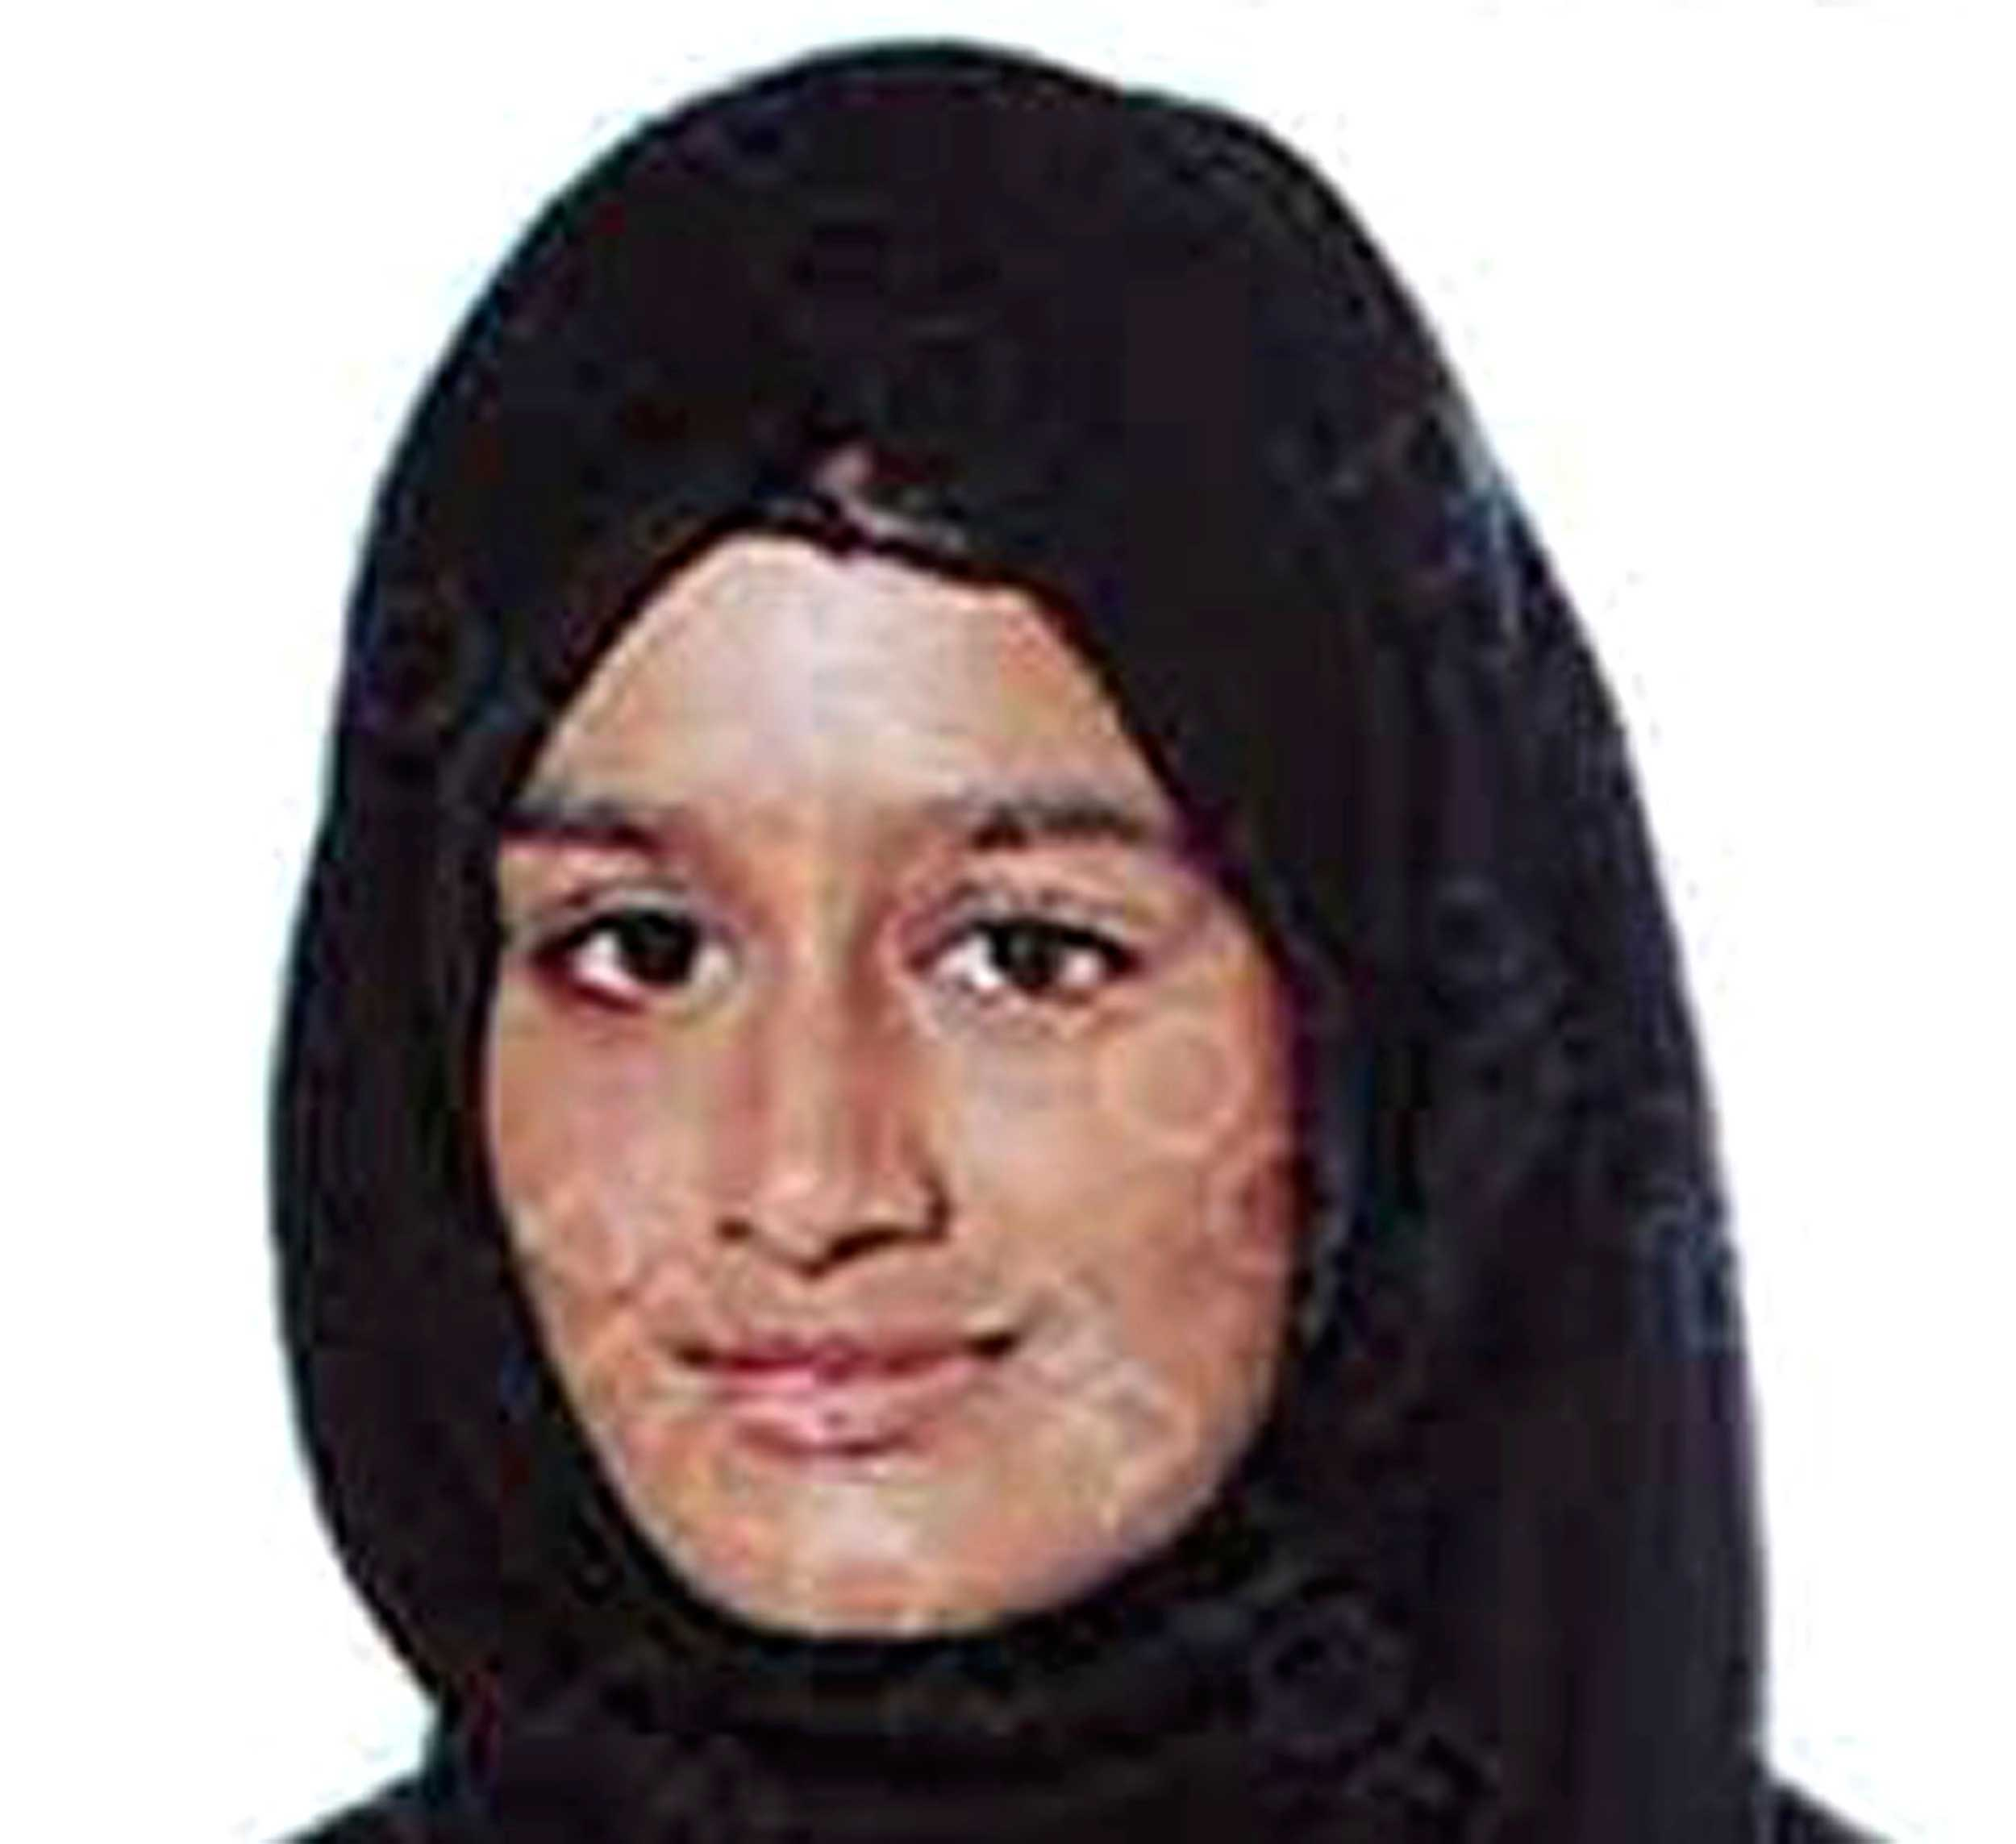 UK girl who joined IS wants to return